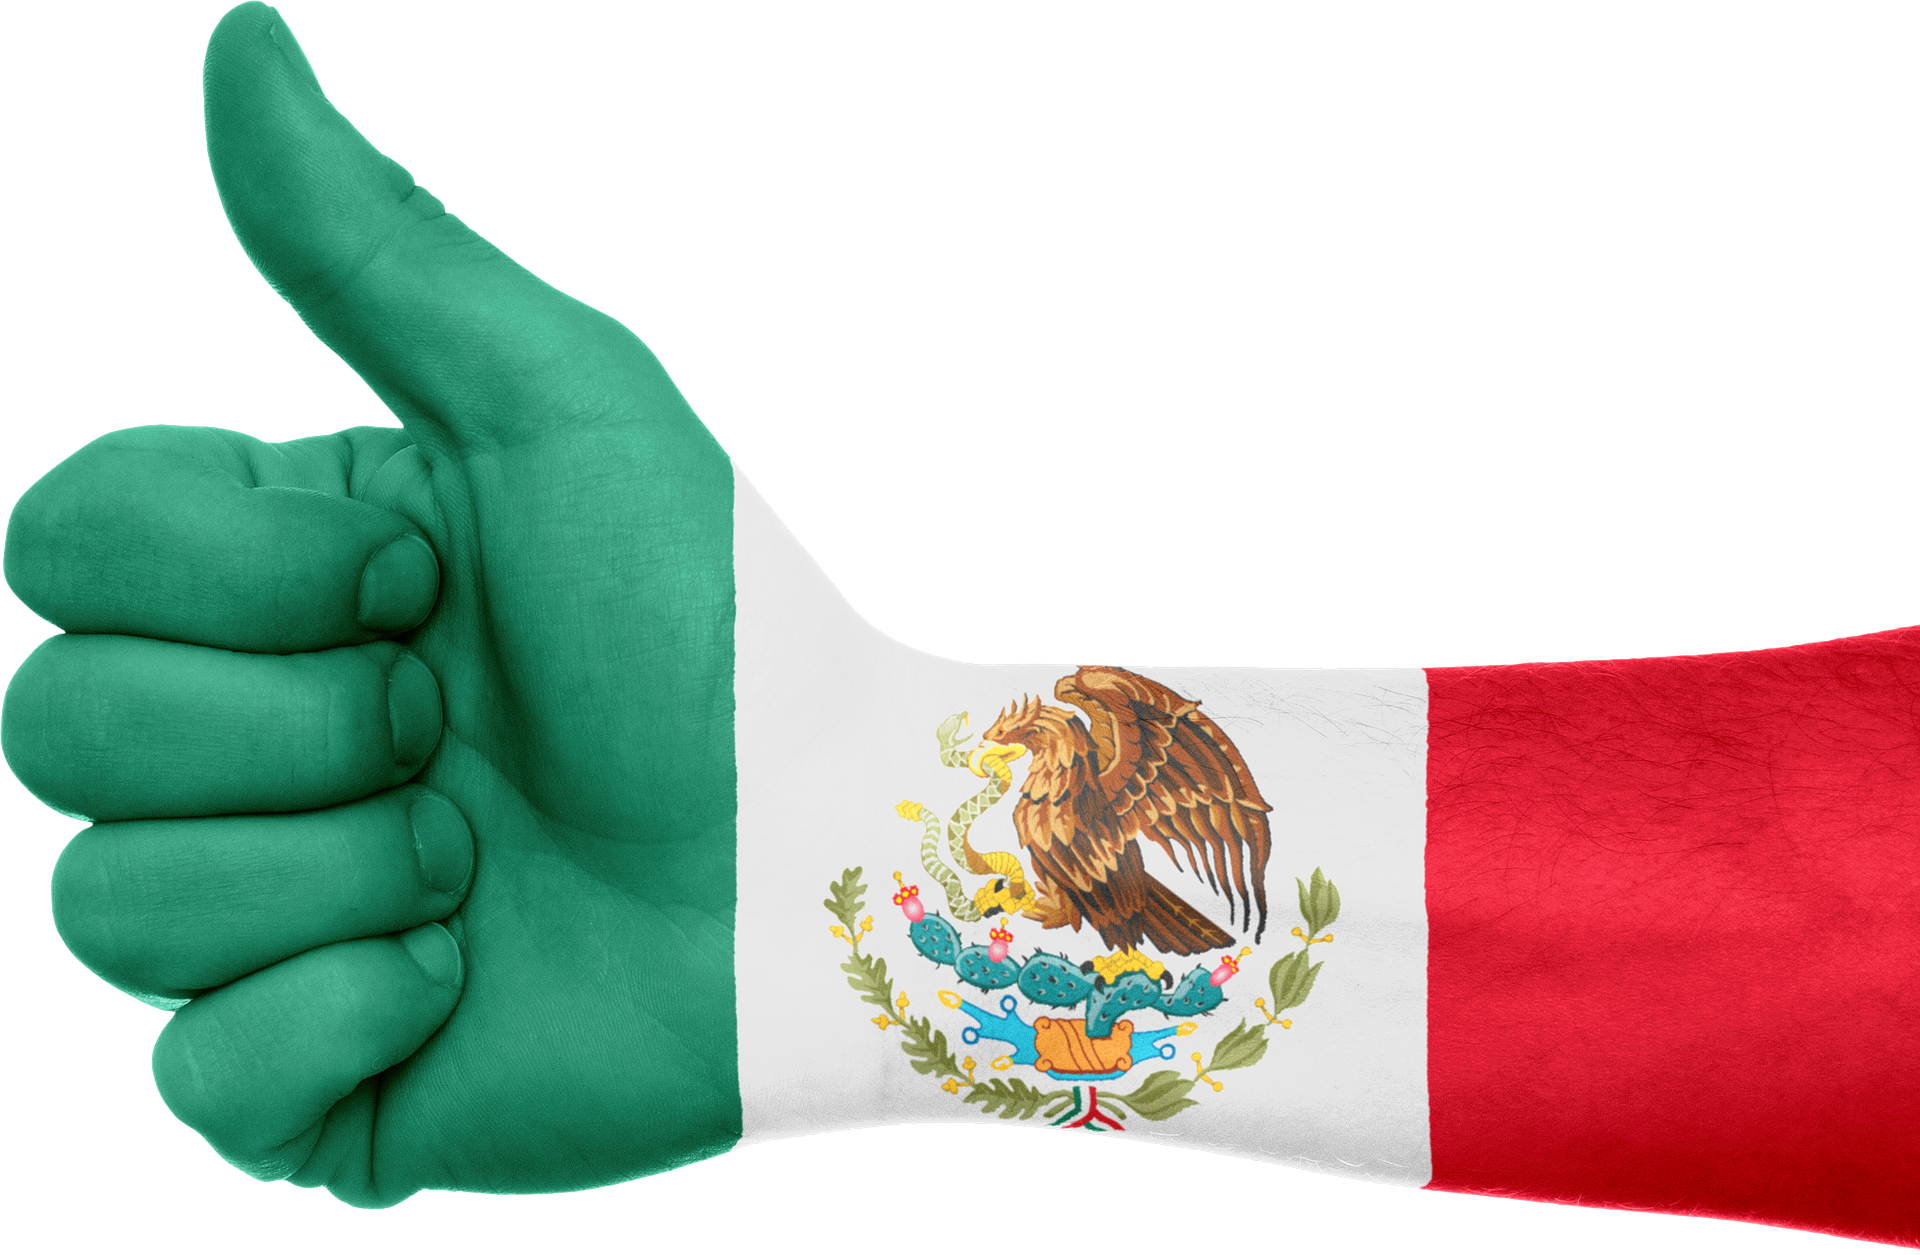 Softbank: Smart Money Heads to the Mexican Credit Card and Payments Market